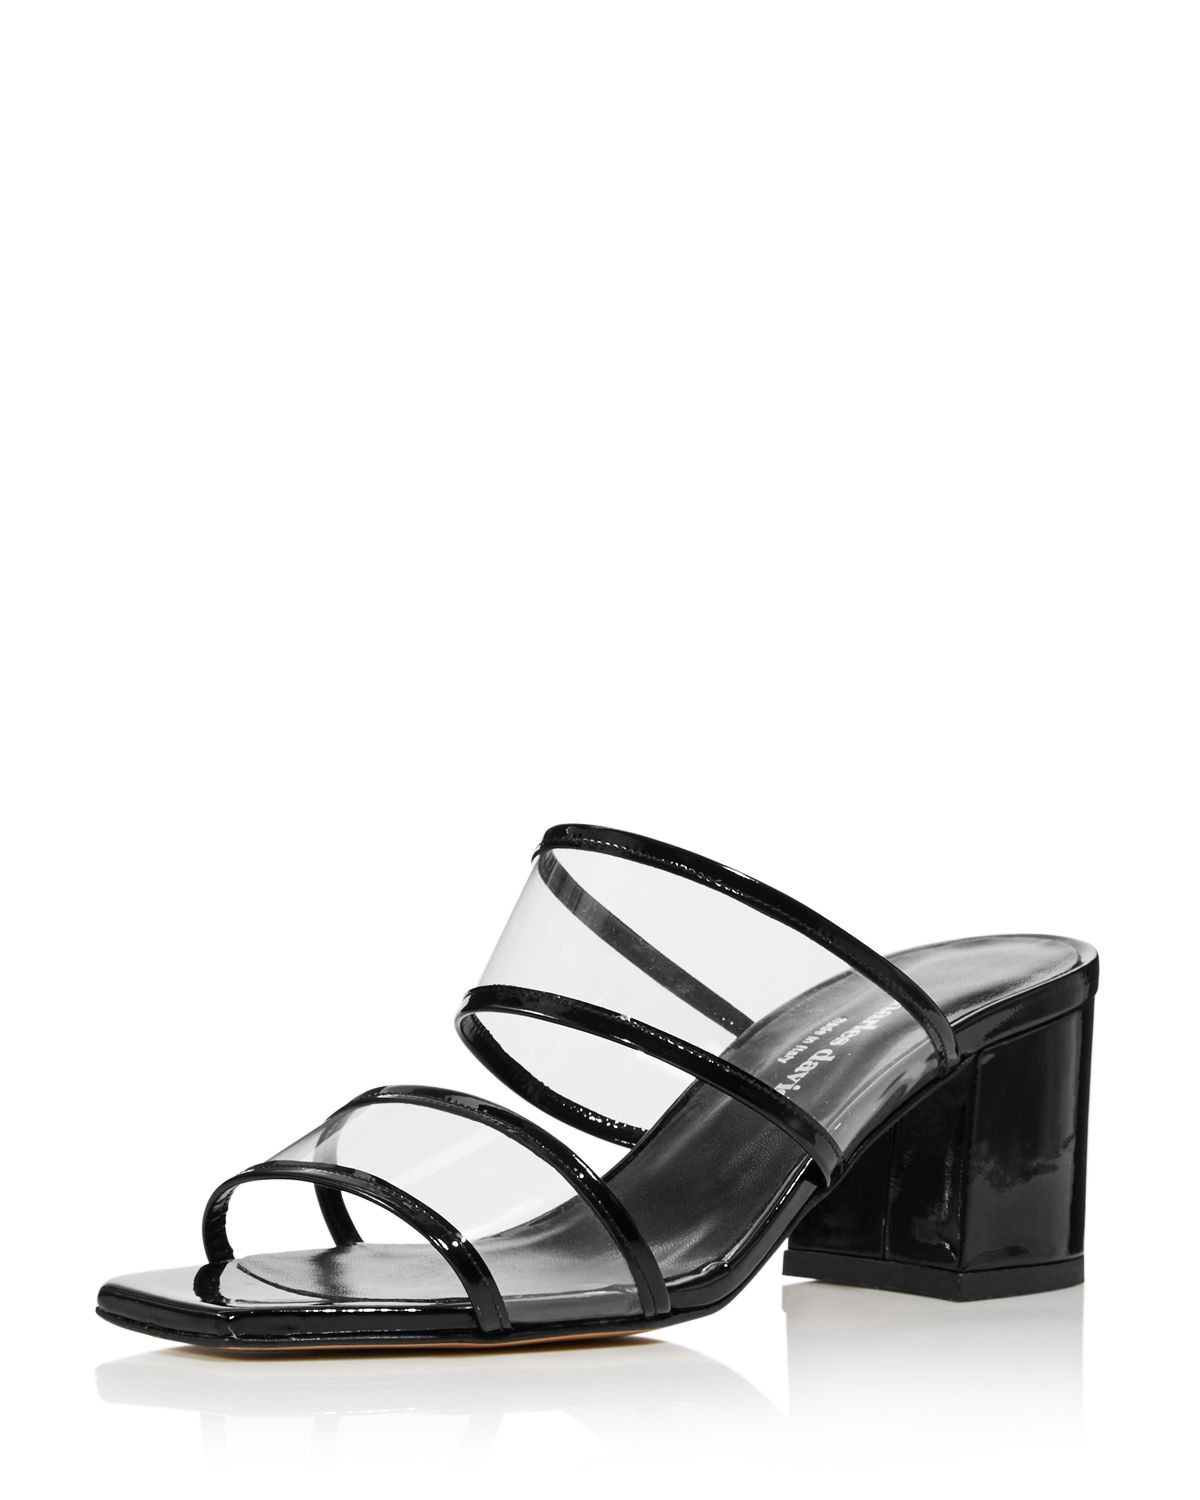 Charles David Women's Cally Leather Illusion Block Heel Slide Sandals